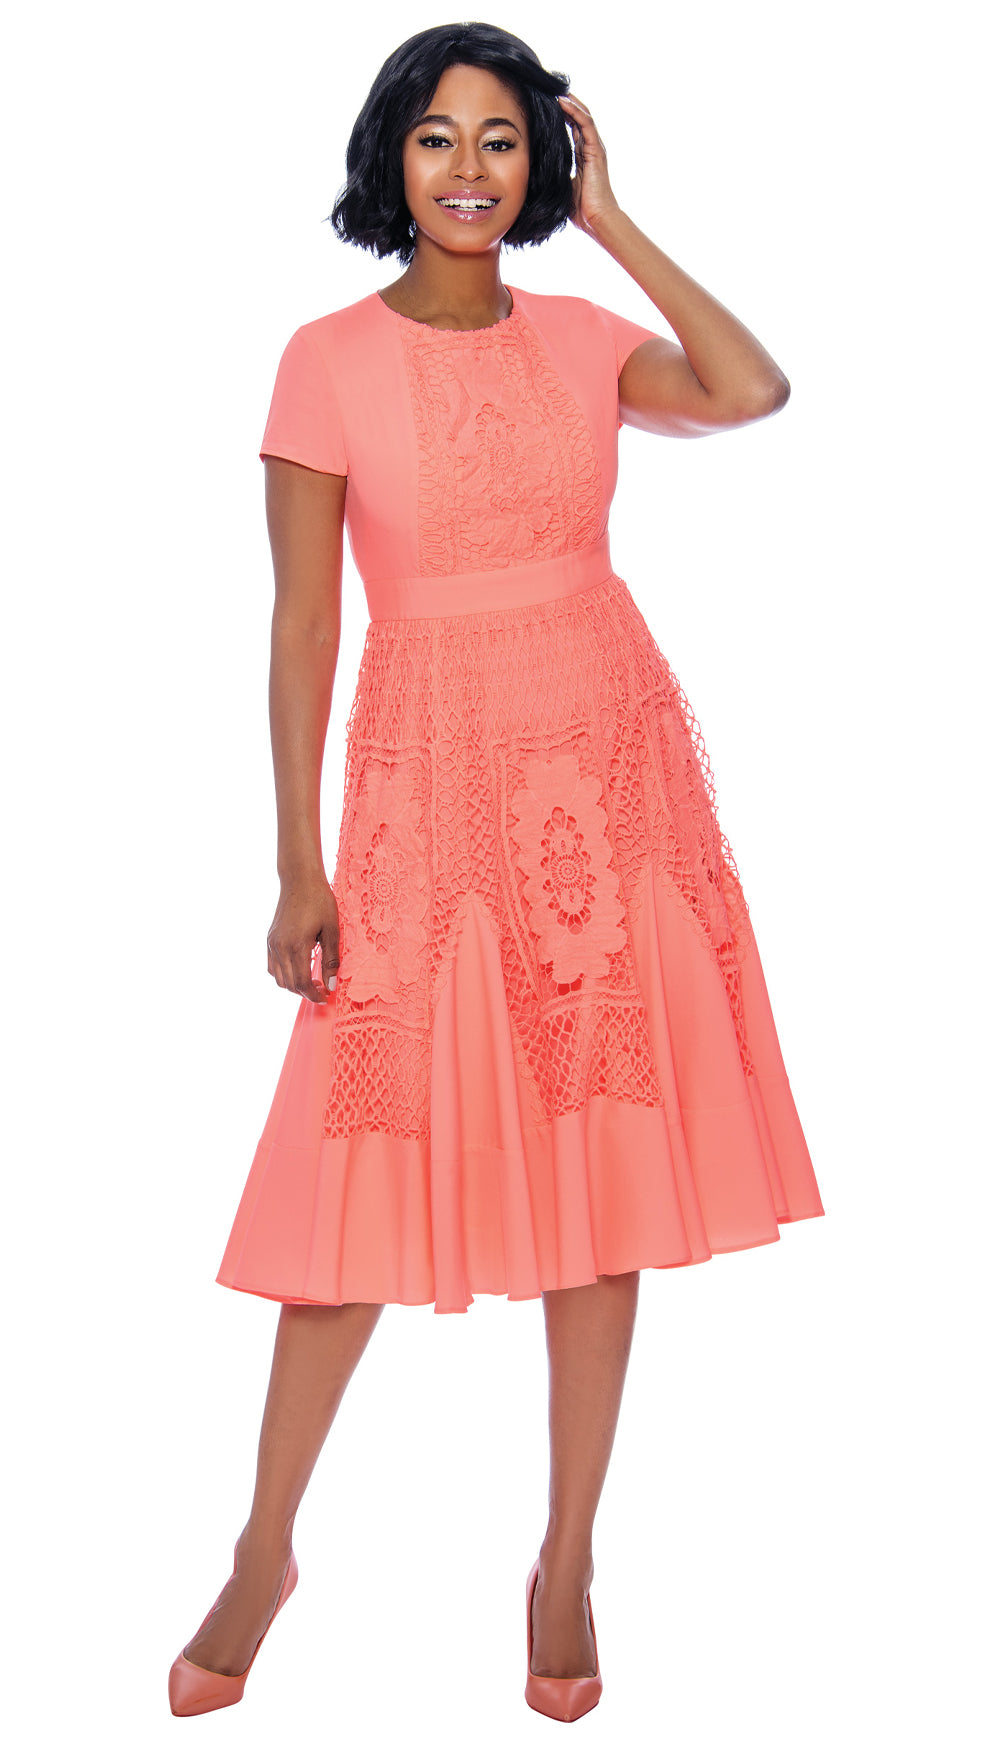 Terramina Dress 7848-Coral - Church Suits For Less